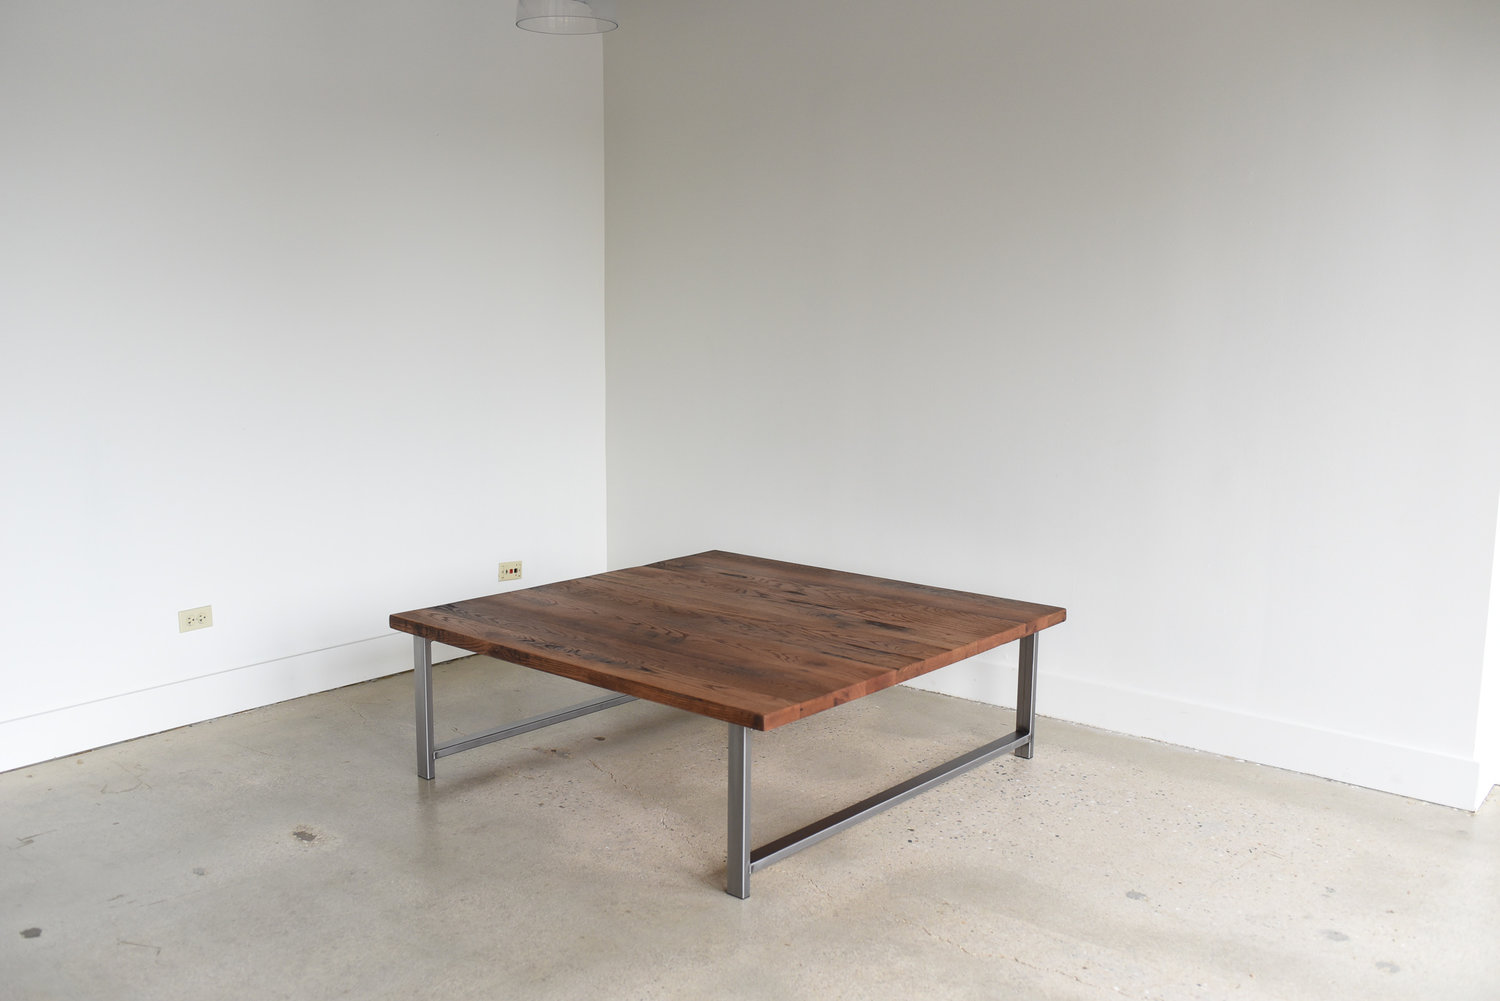 Square Reclaimed Wood Coffee Table In Stock What We Make